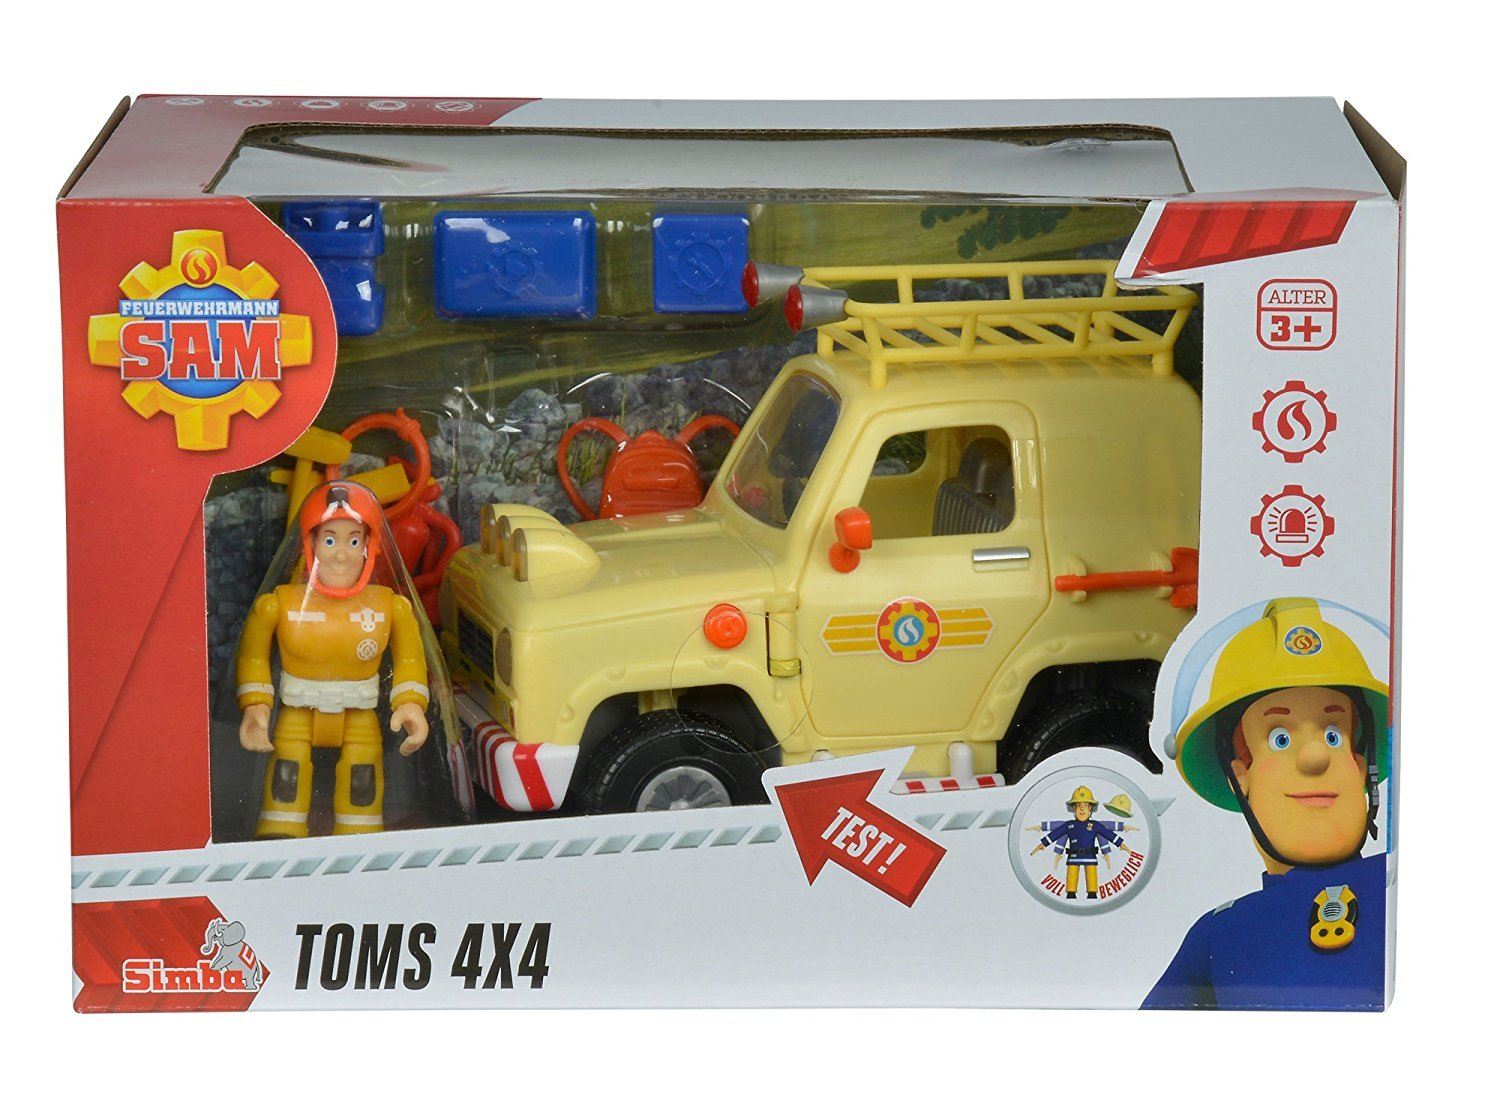 Fireman Sam! Deluxe Fireman Sam Sams Jeep 4x4 Truck with Accessory Pack and Figure Ages 3